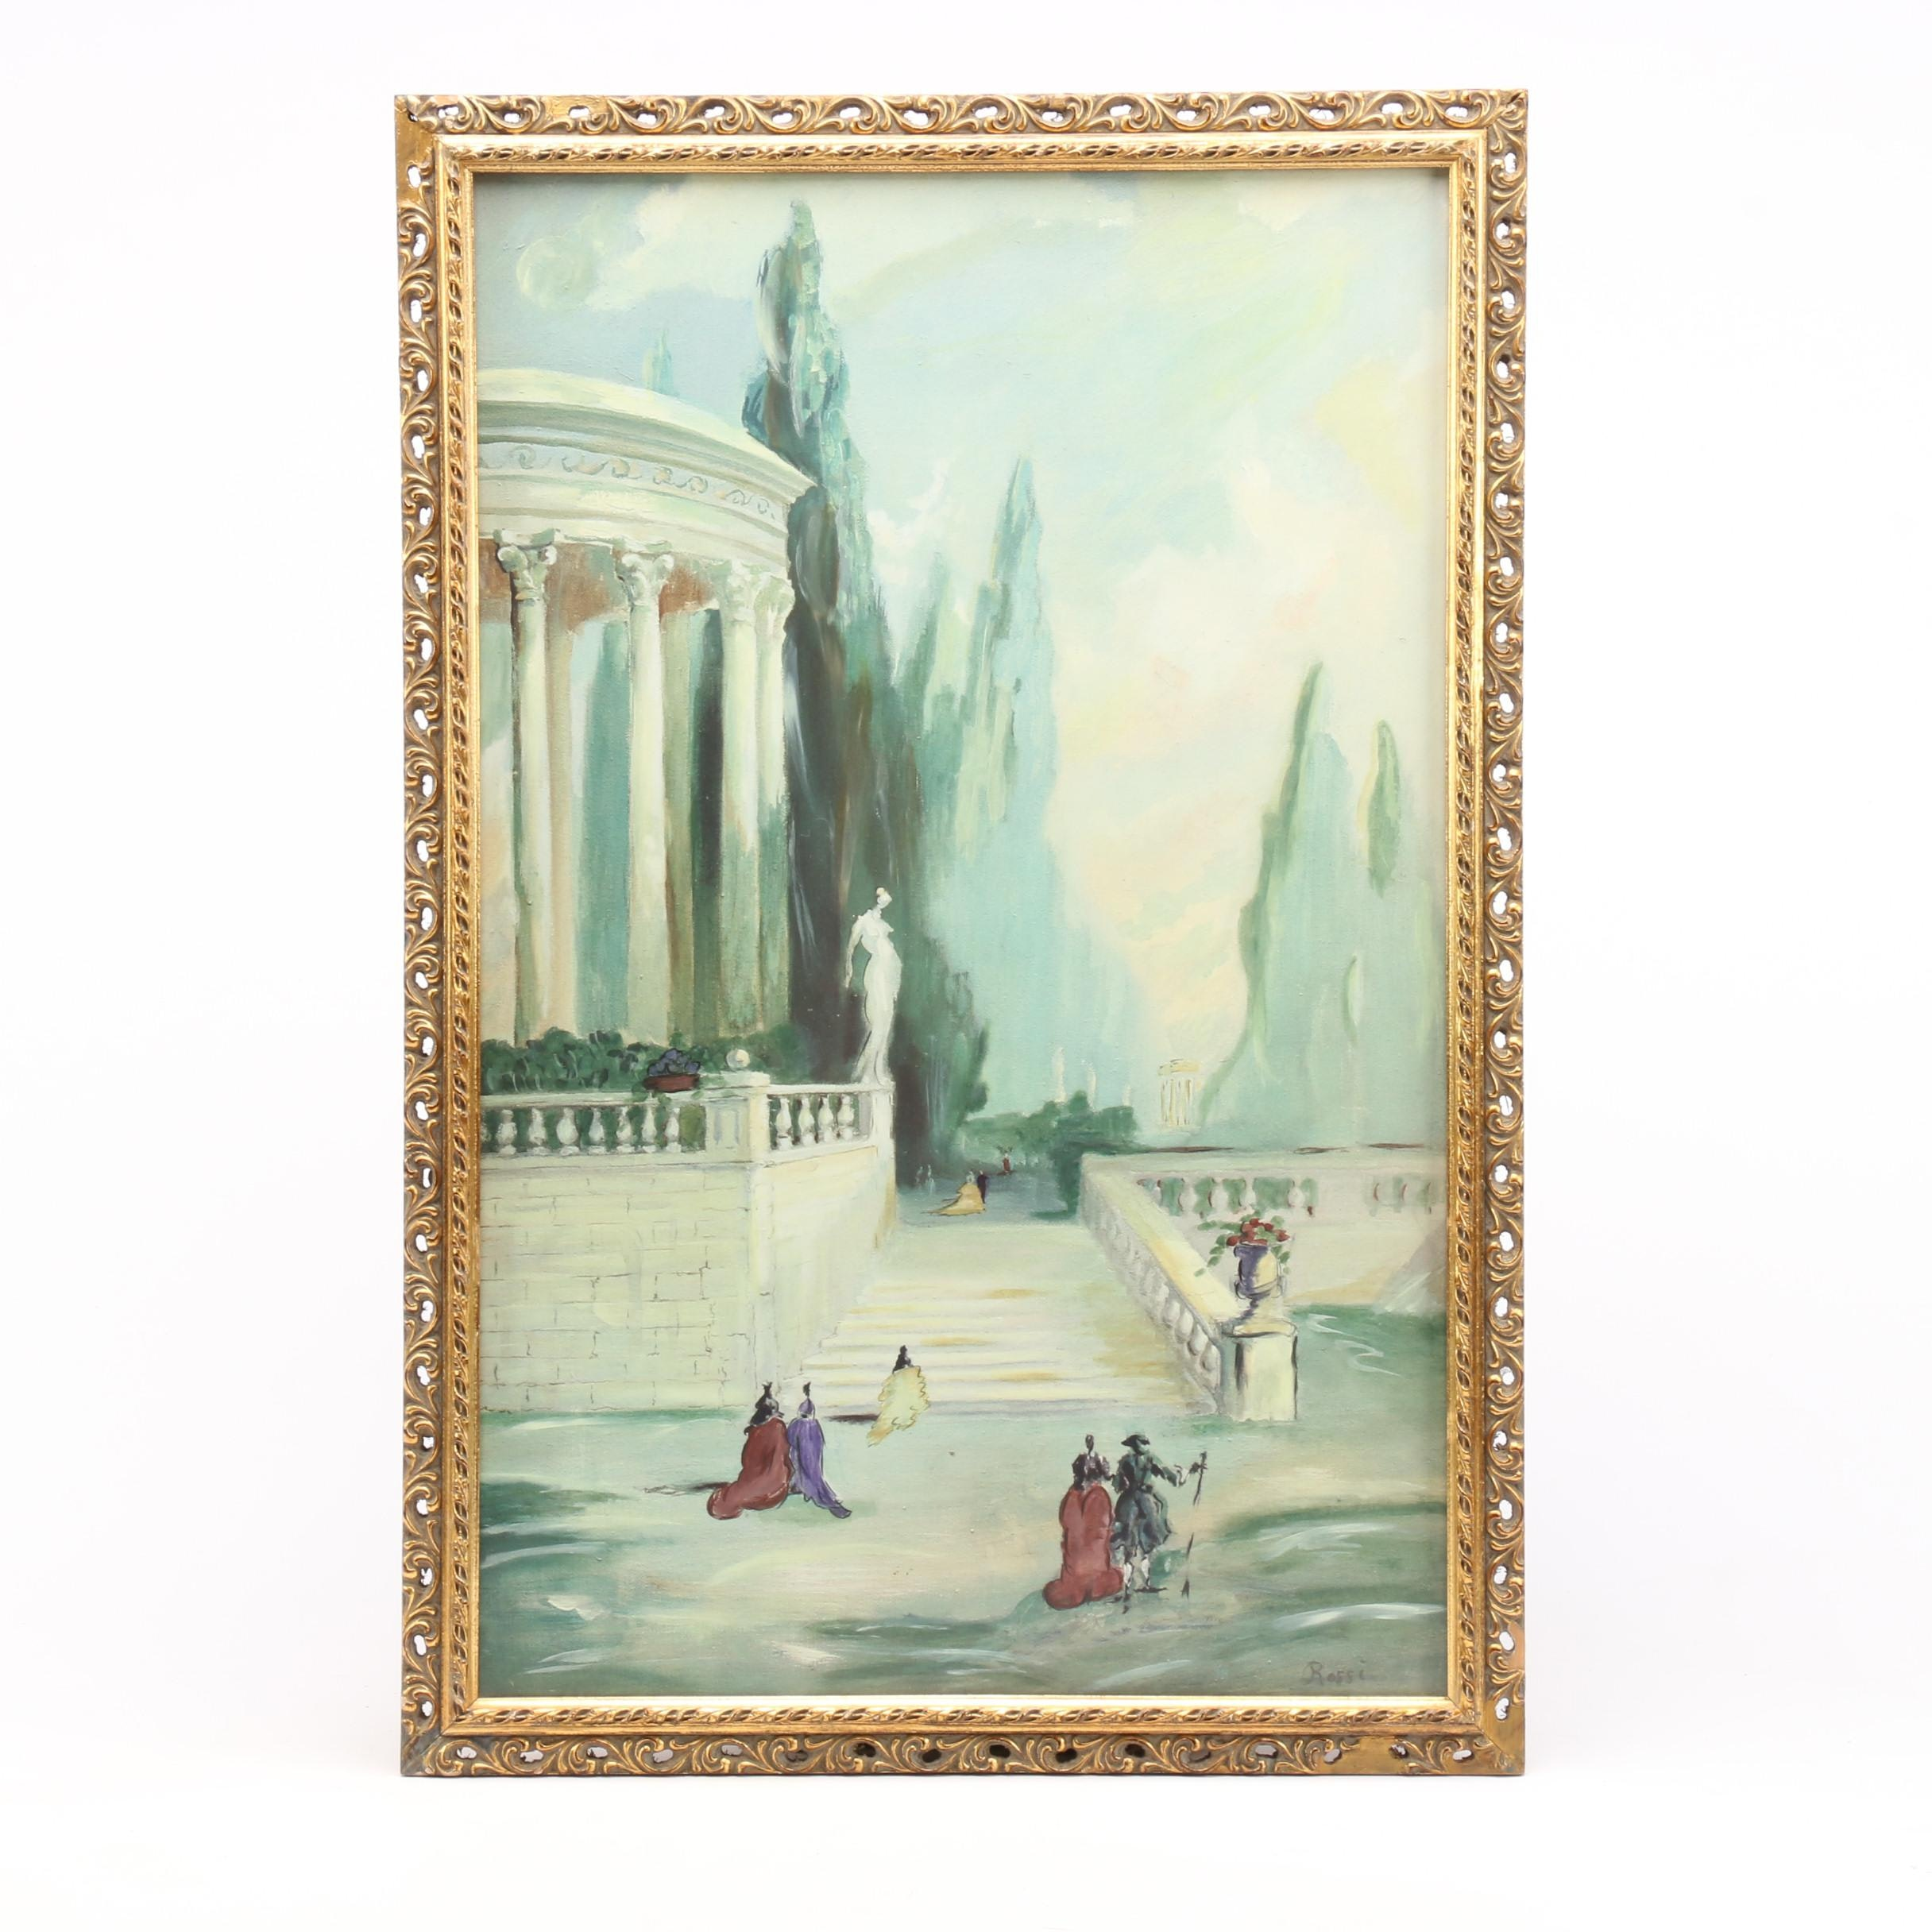 Rossi Hand-Embellished Giclée of Italian Courtyard